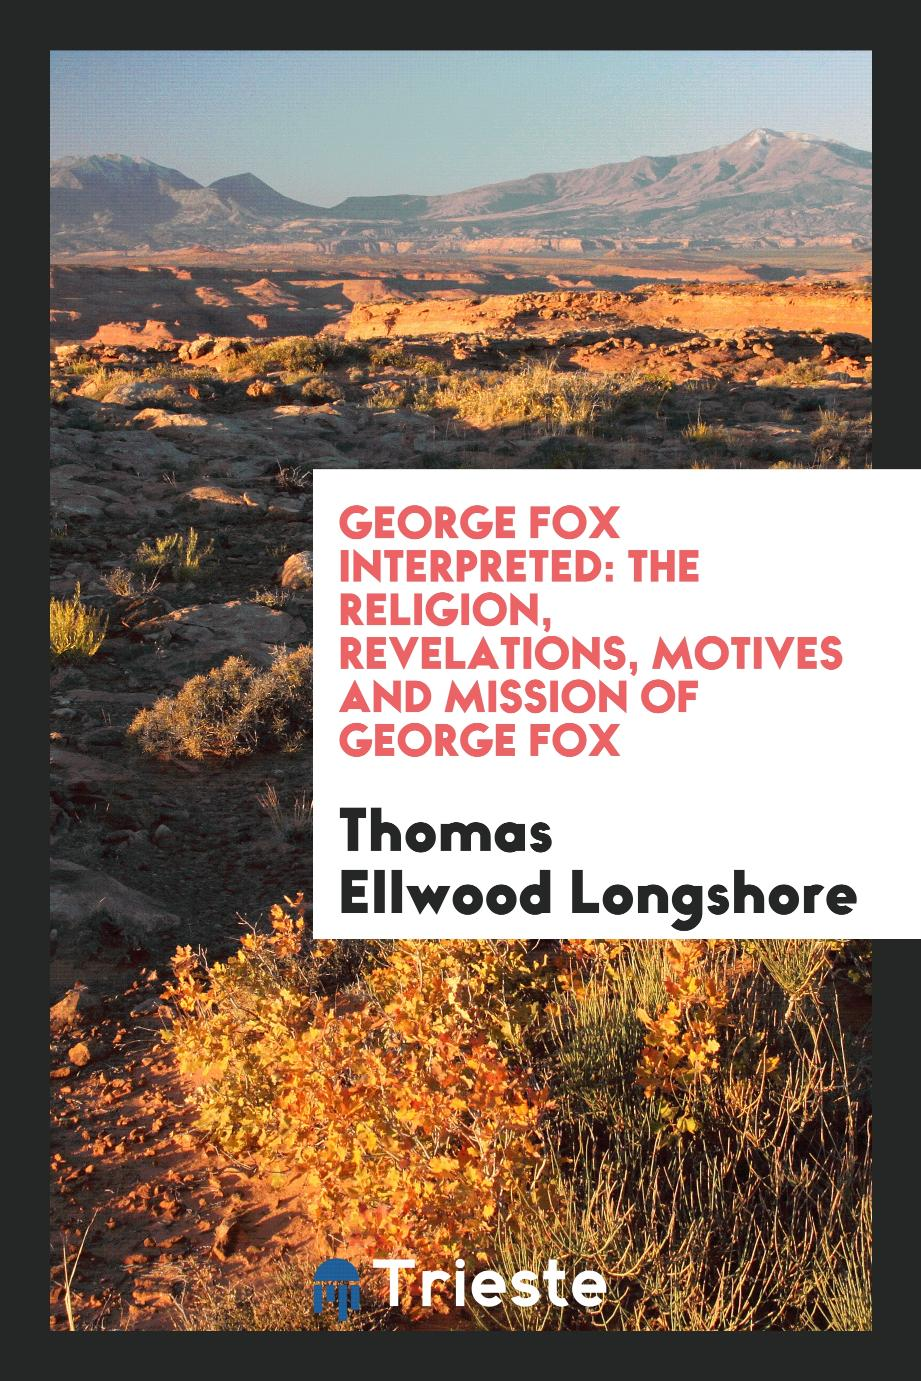 George Fox Interpreted: The Religion, Revelations, Motives and Mission of George Fox